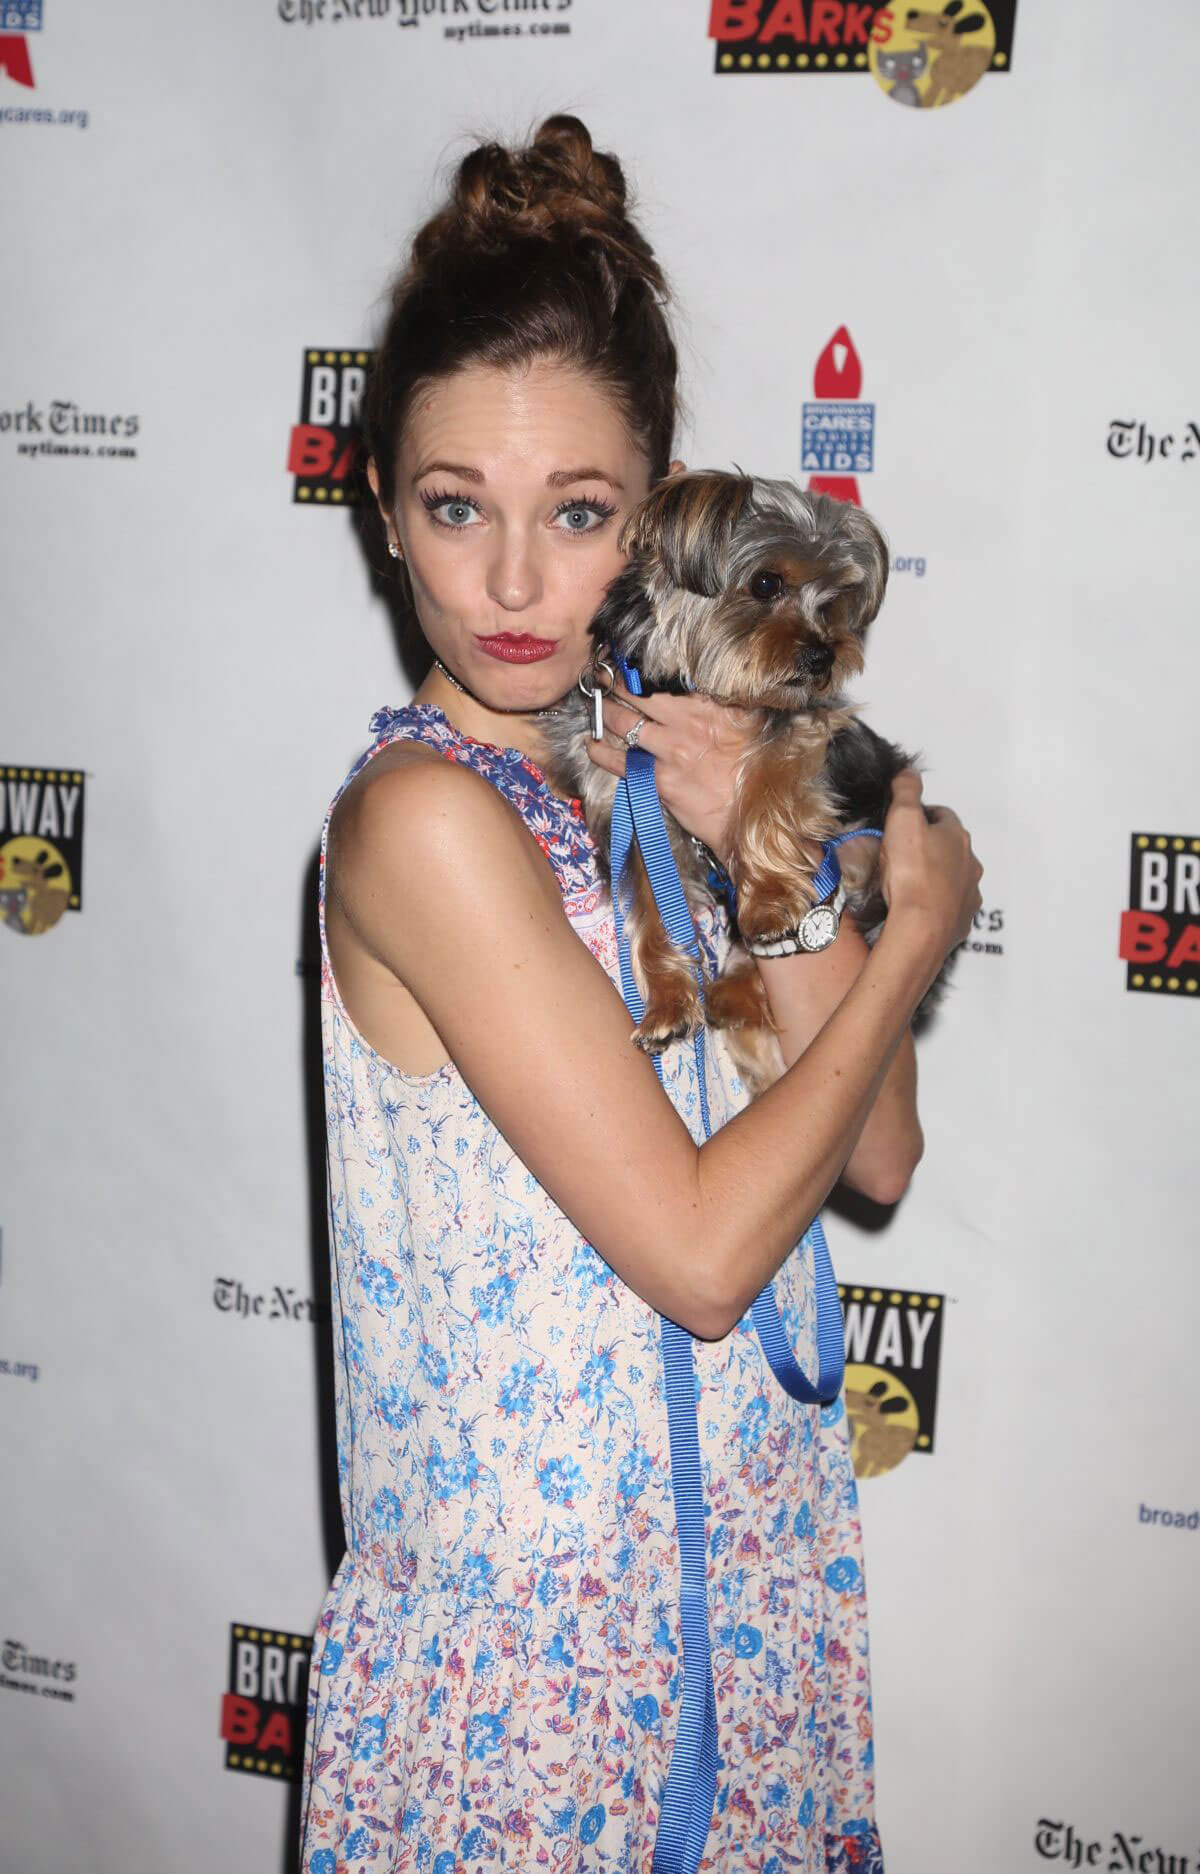 Laura Osnes Stills at 19th Annual Broadway Barks Animal Adoption Event in New York